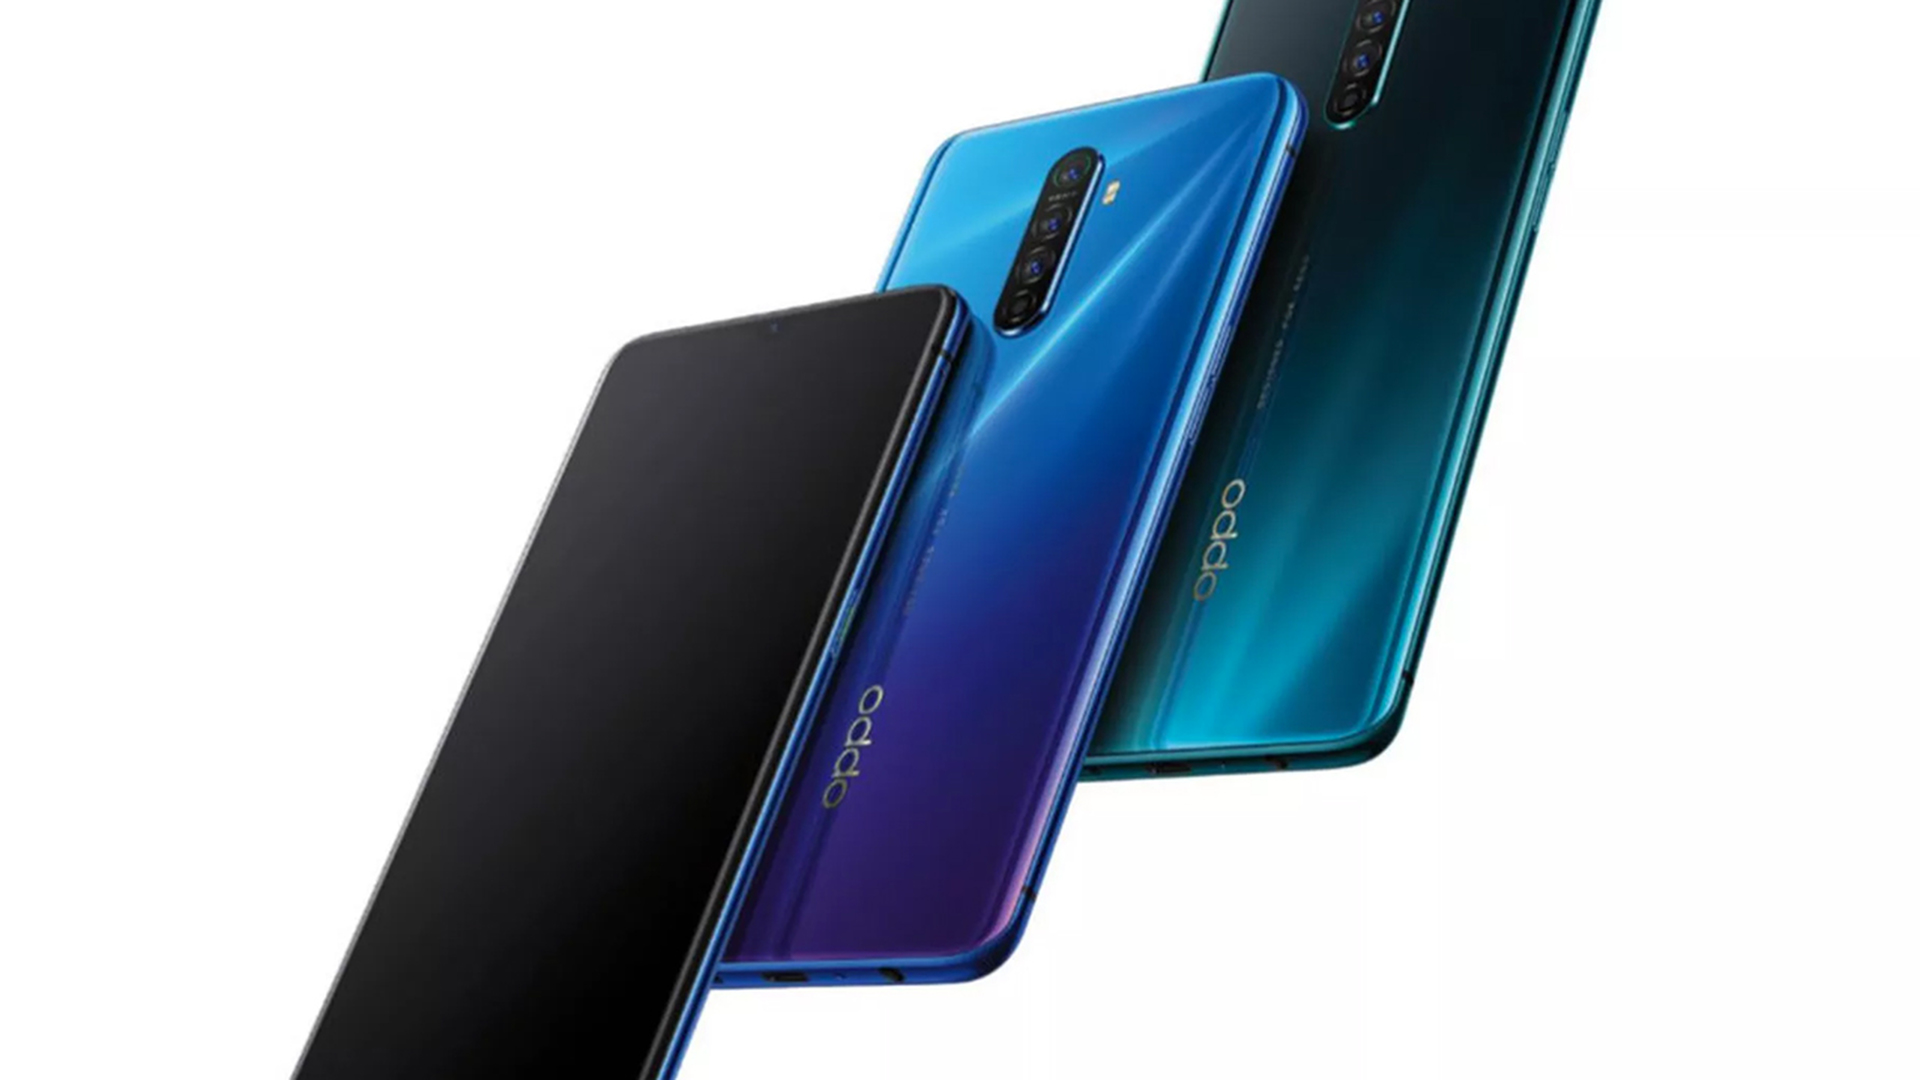 The new Oppo Reno Ace smartphone will fully charge in half an hour